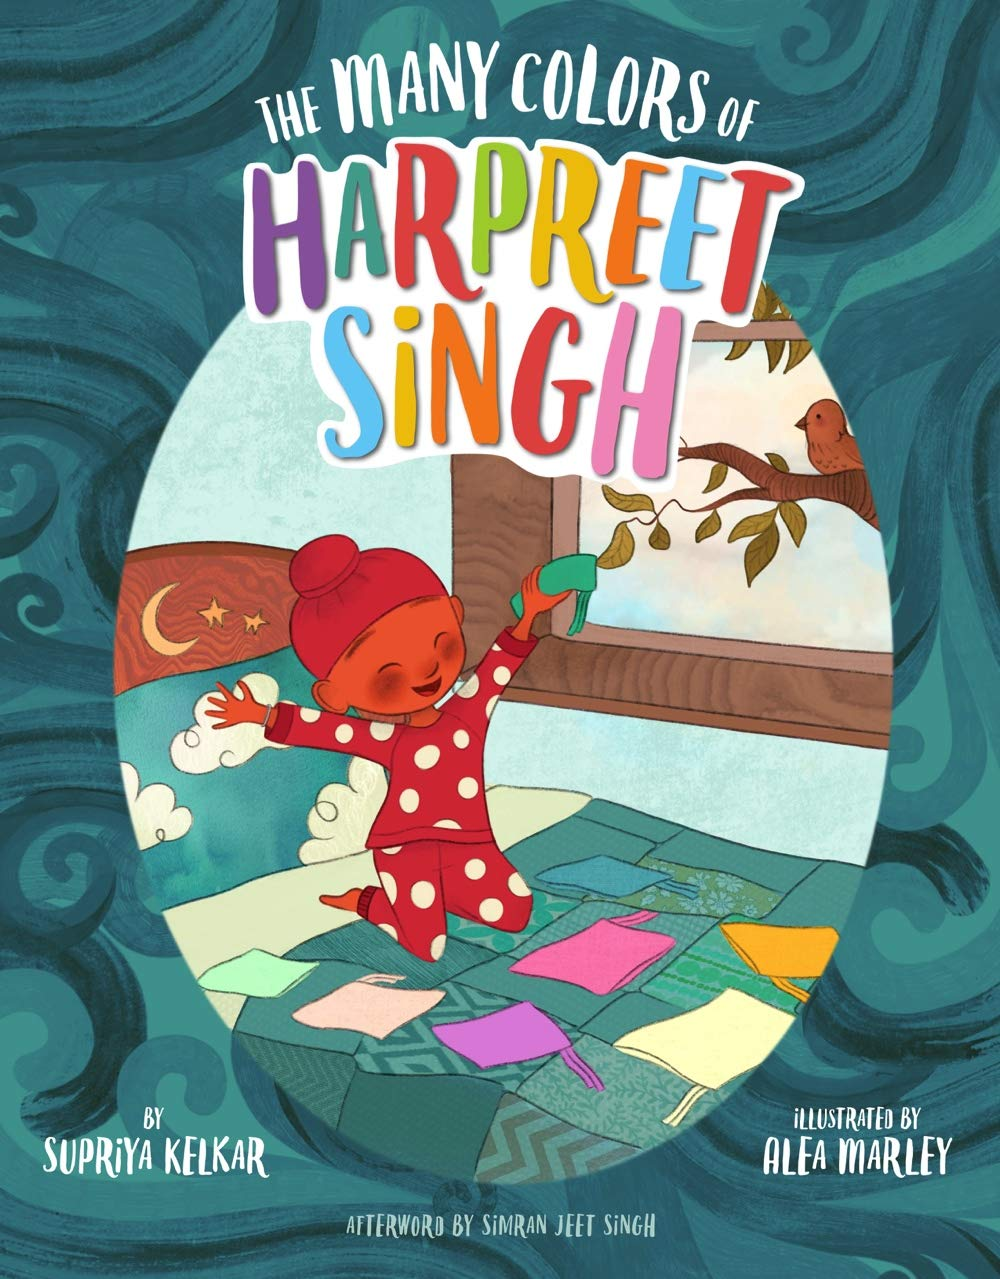 Sterling Children's Books (September 3, 2019)